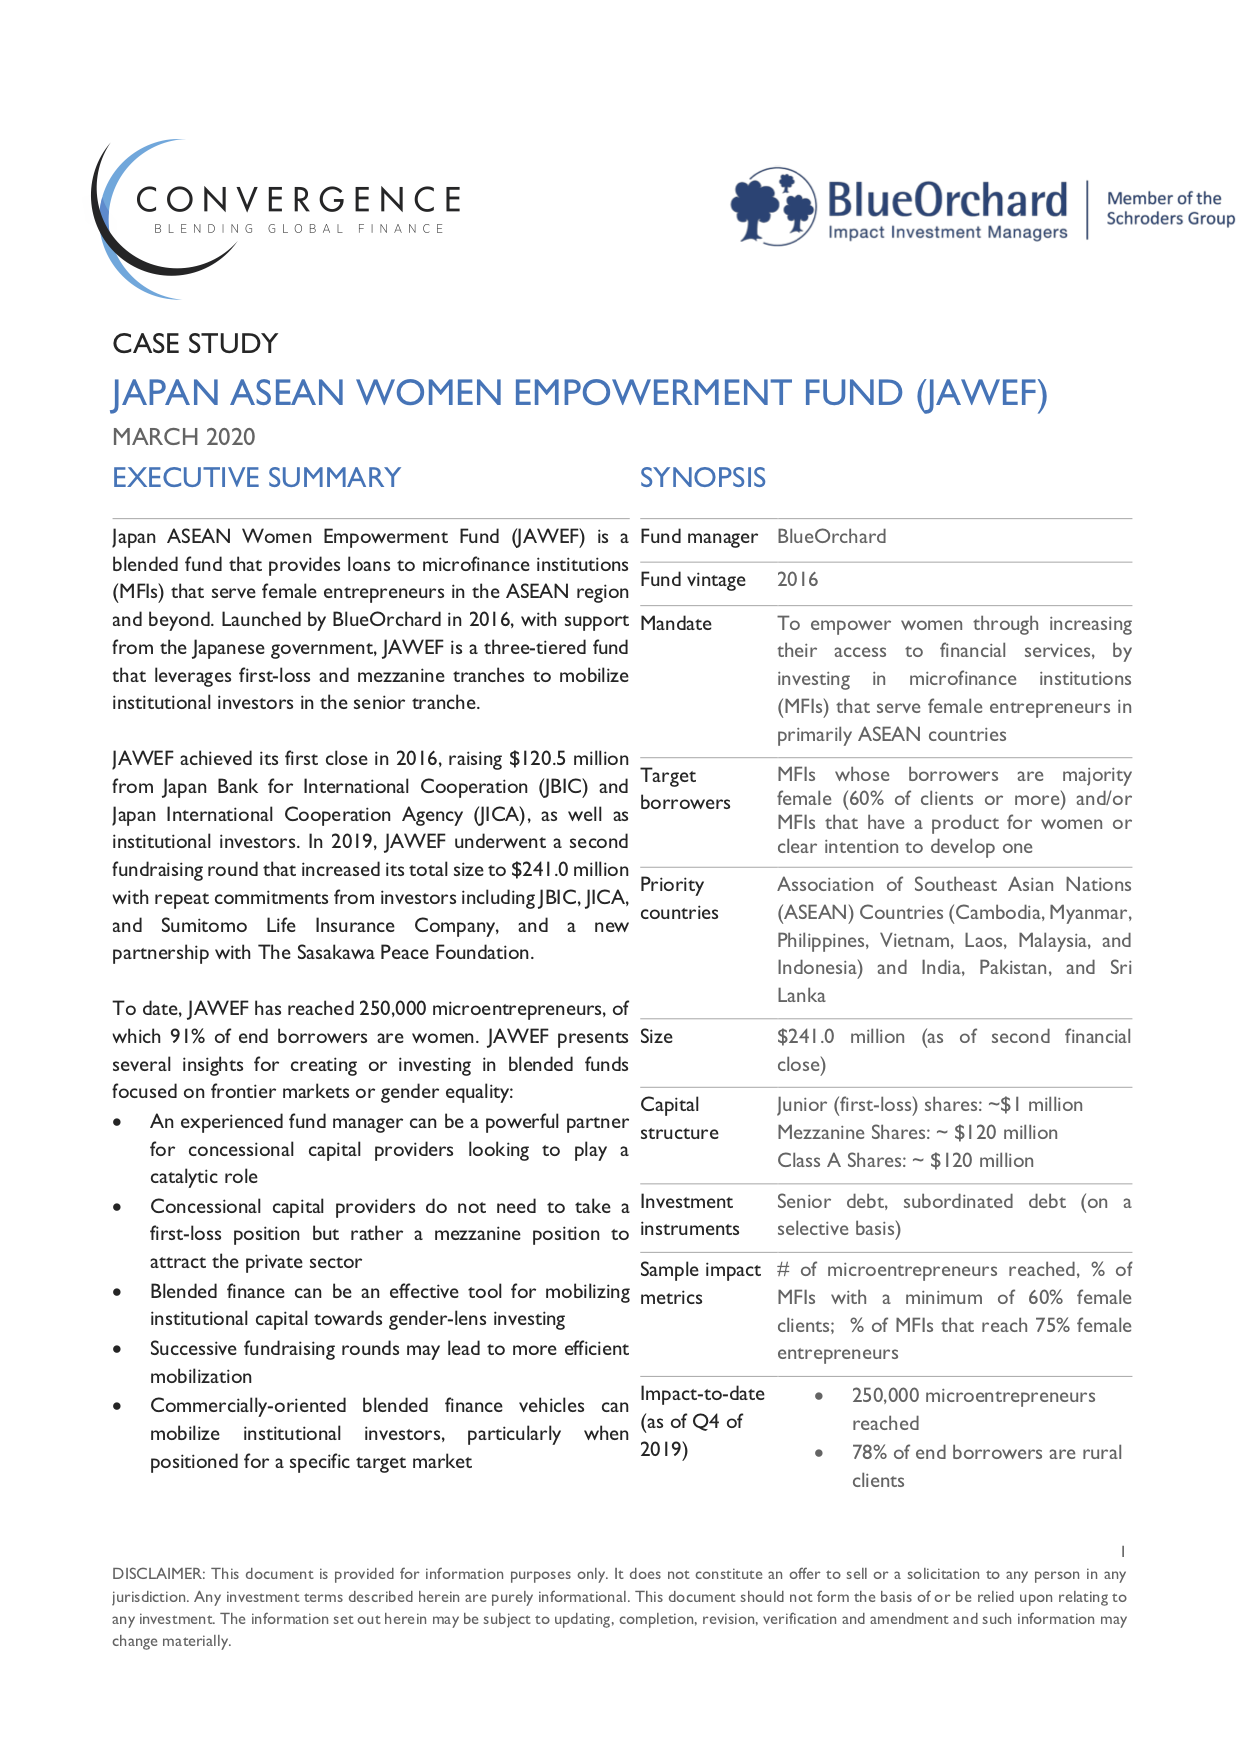 Japan ASEAN Women Empowerment Fund Case Study